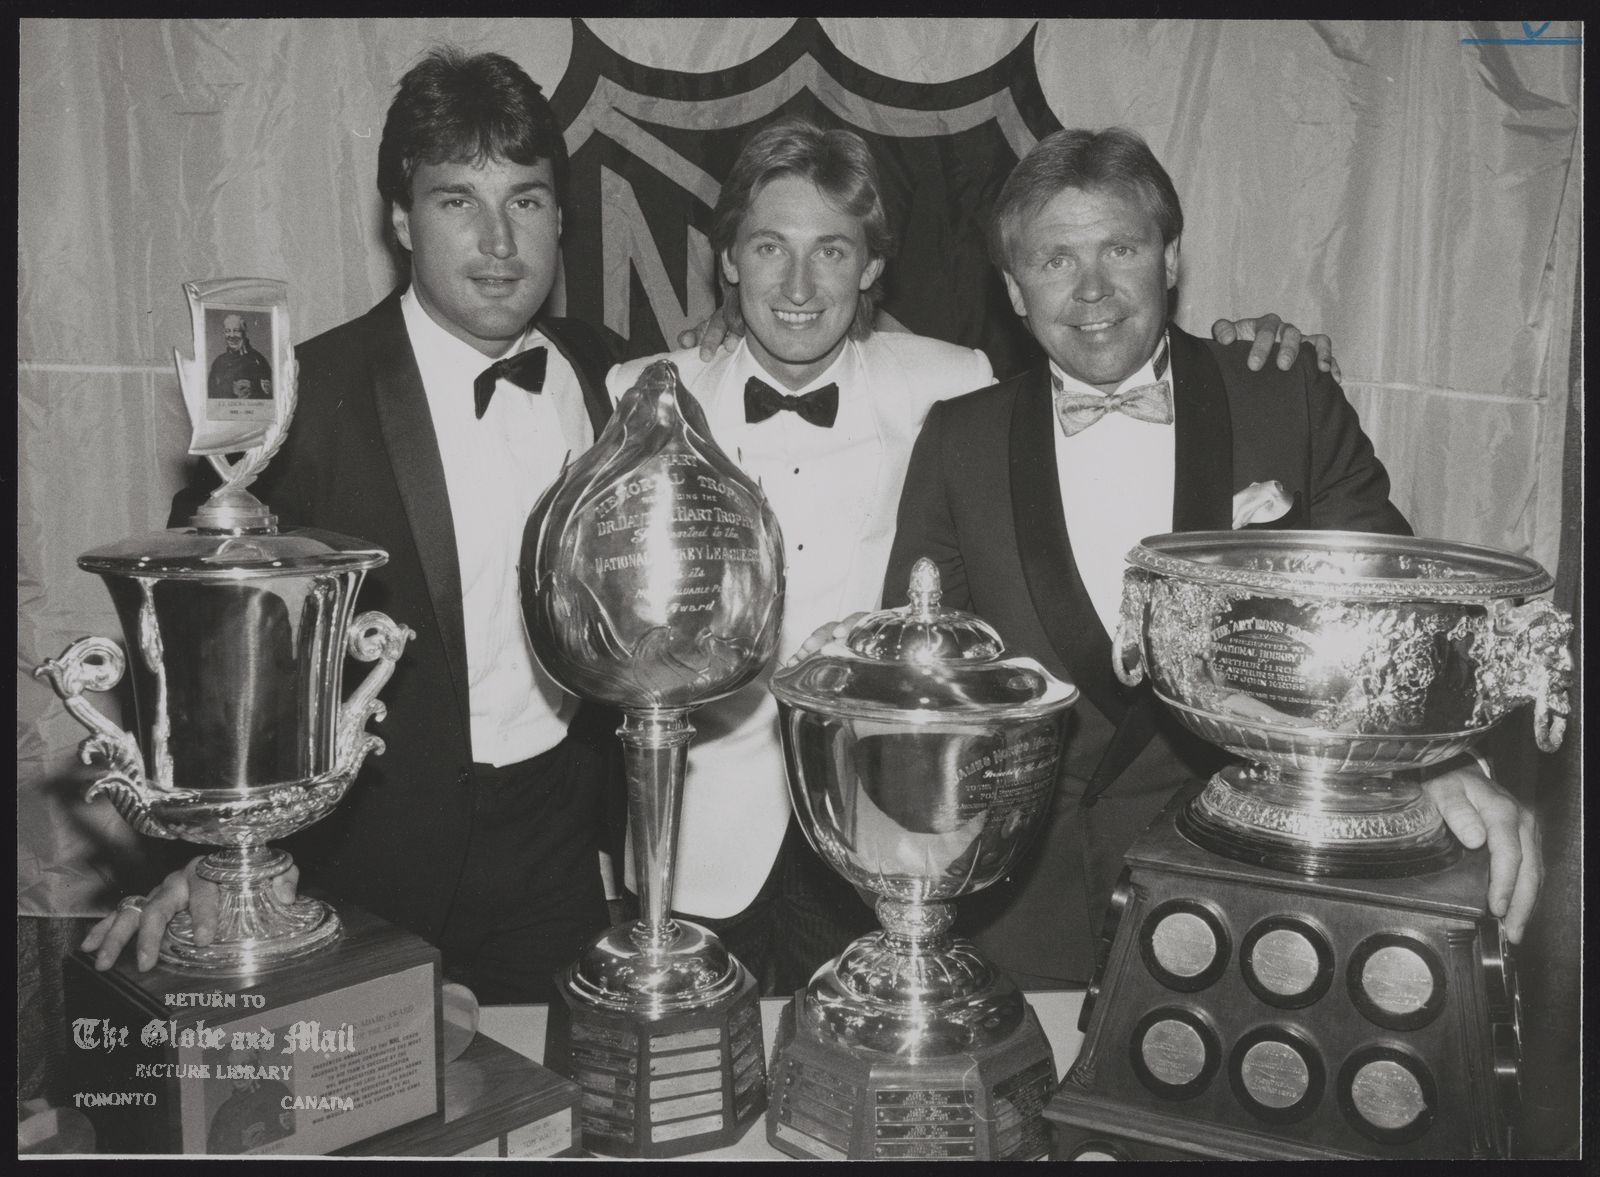 EDMONTON OILERS HOCKEY TEAM Edmonton Oilers Paul Coffey, Wayne Gretzky and coach Glen Sather won four of the eight individual / awards presented night. NHL